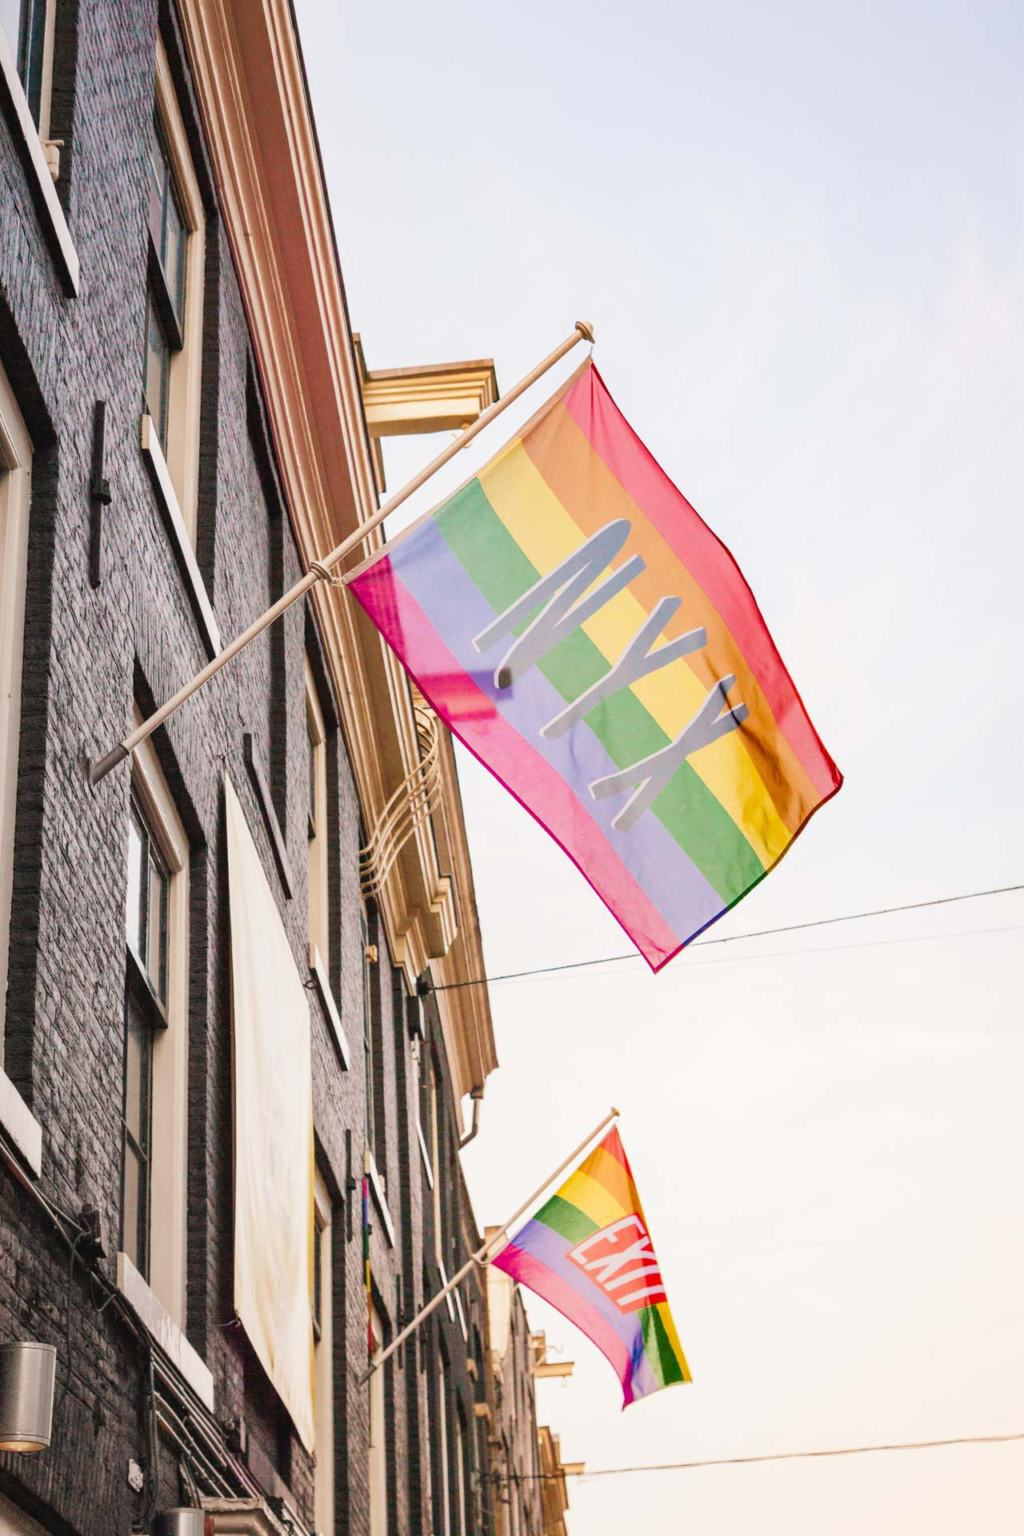 Gay Club NYX, Gay bar EXIT, Reguliersdwarsstraat, Amsterdam